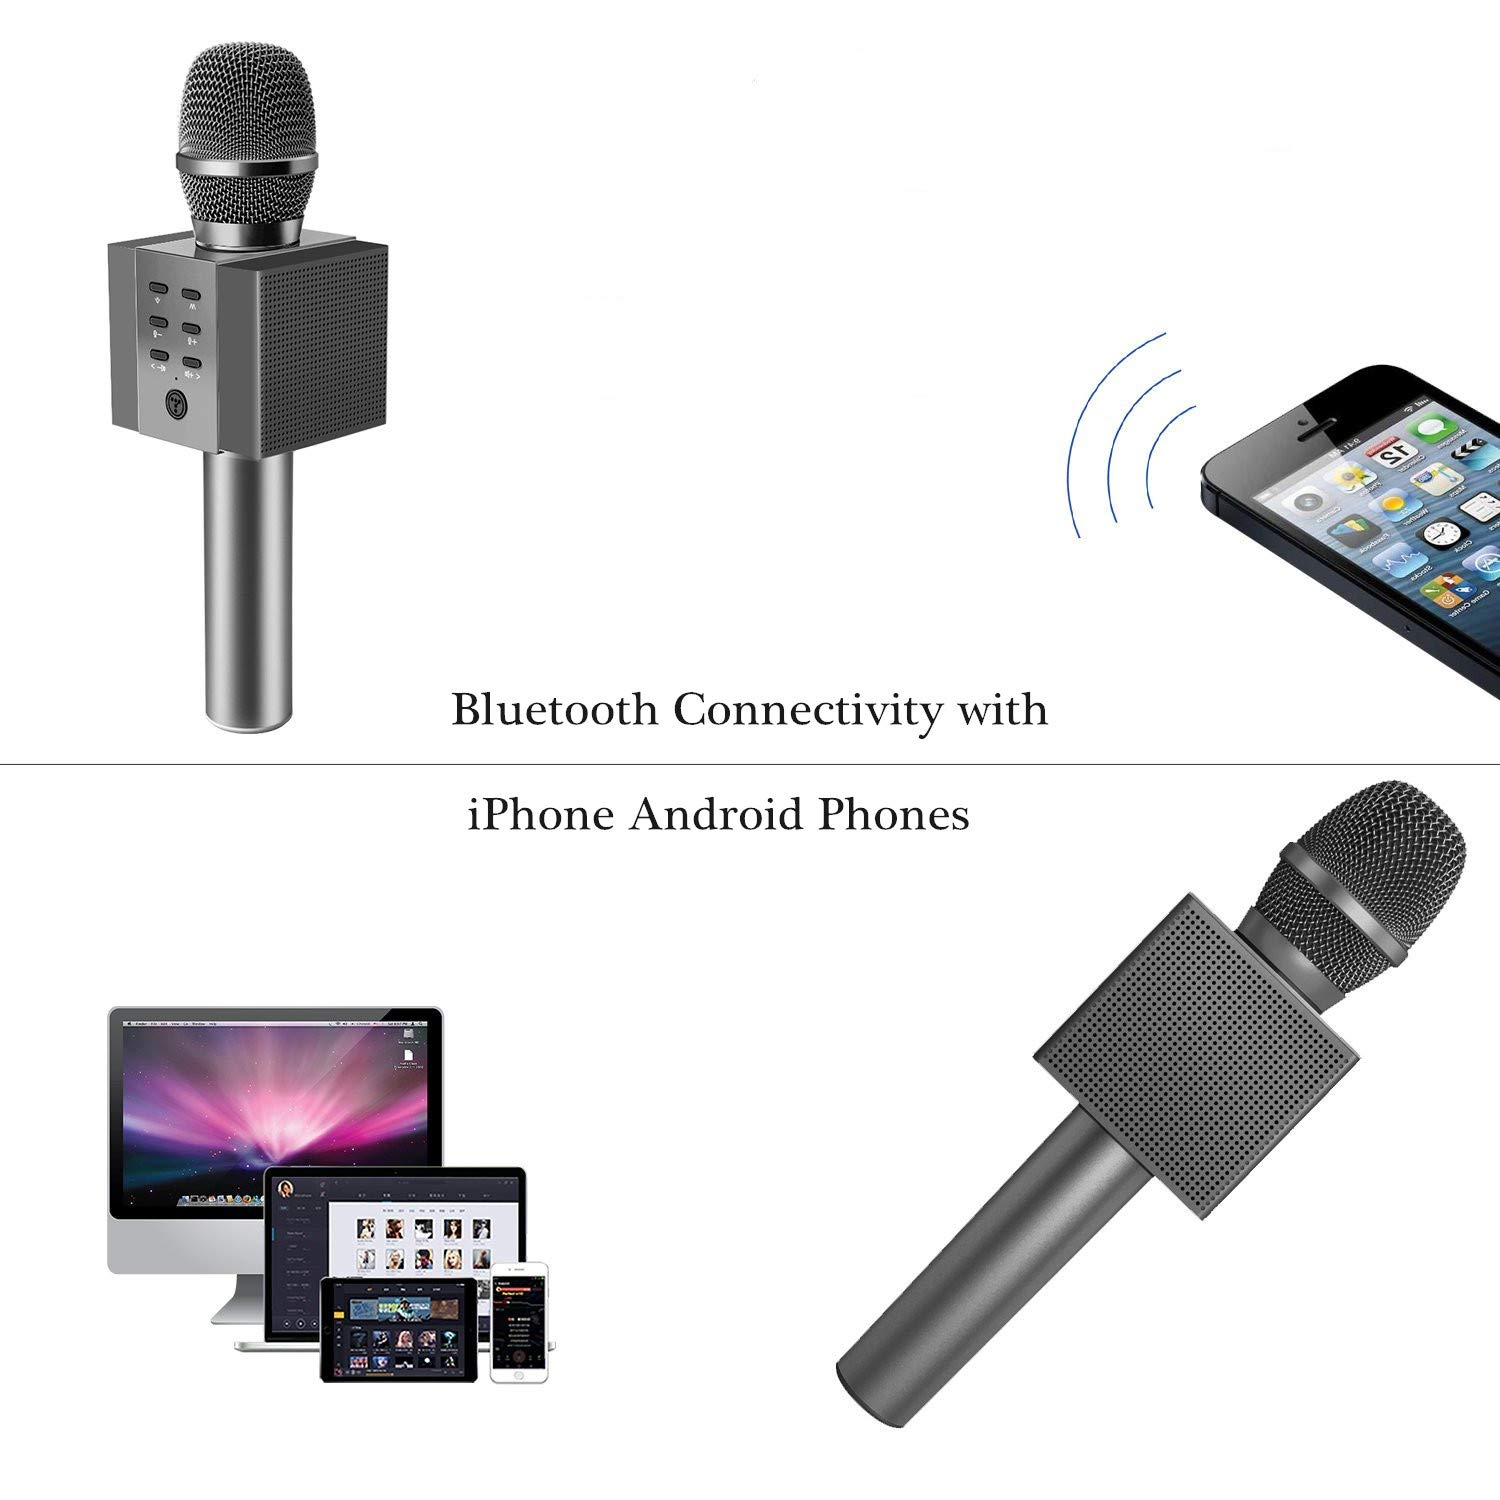 TOSING Wireless Karaoke Microphone for Kids, Top Birthday Party Gifts Ideas for Teens and Adults, Bluetooth Handheld Karaoke Machine, Superior Surrounding, Compatible with iPhone Android Phones by TOSING (Image #4)